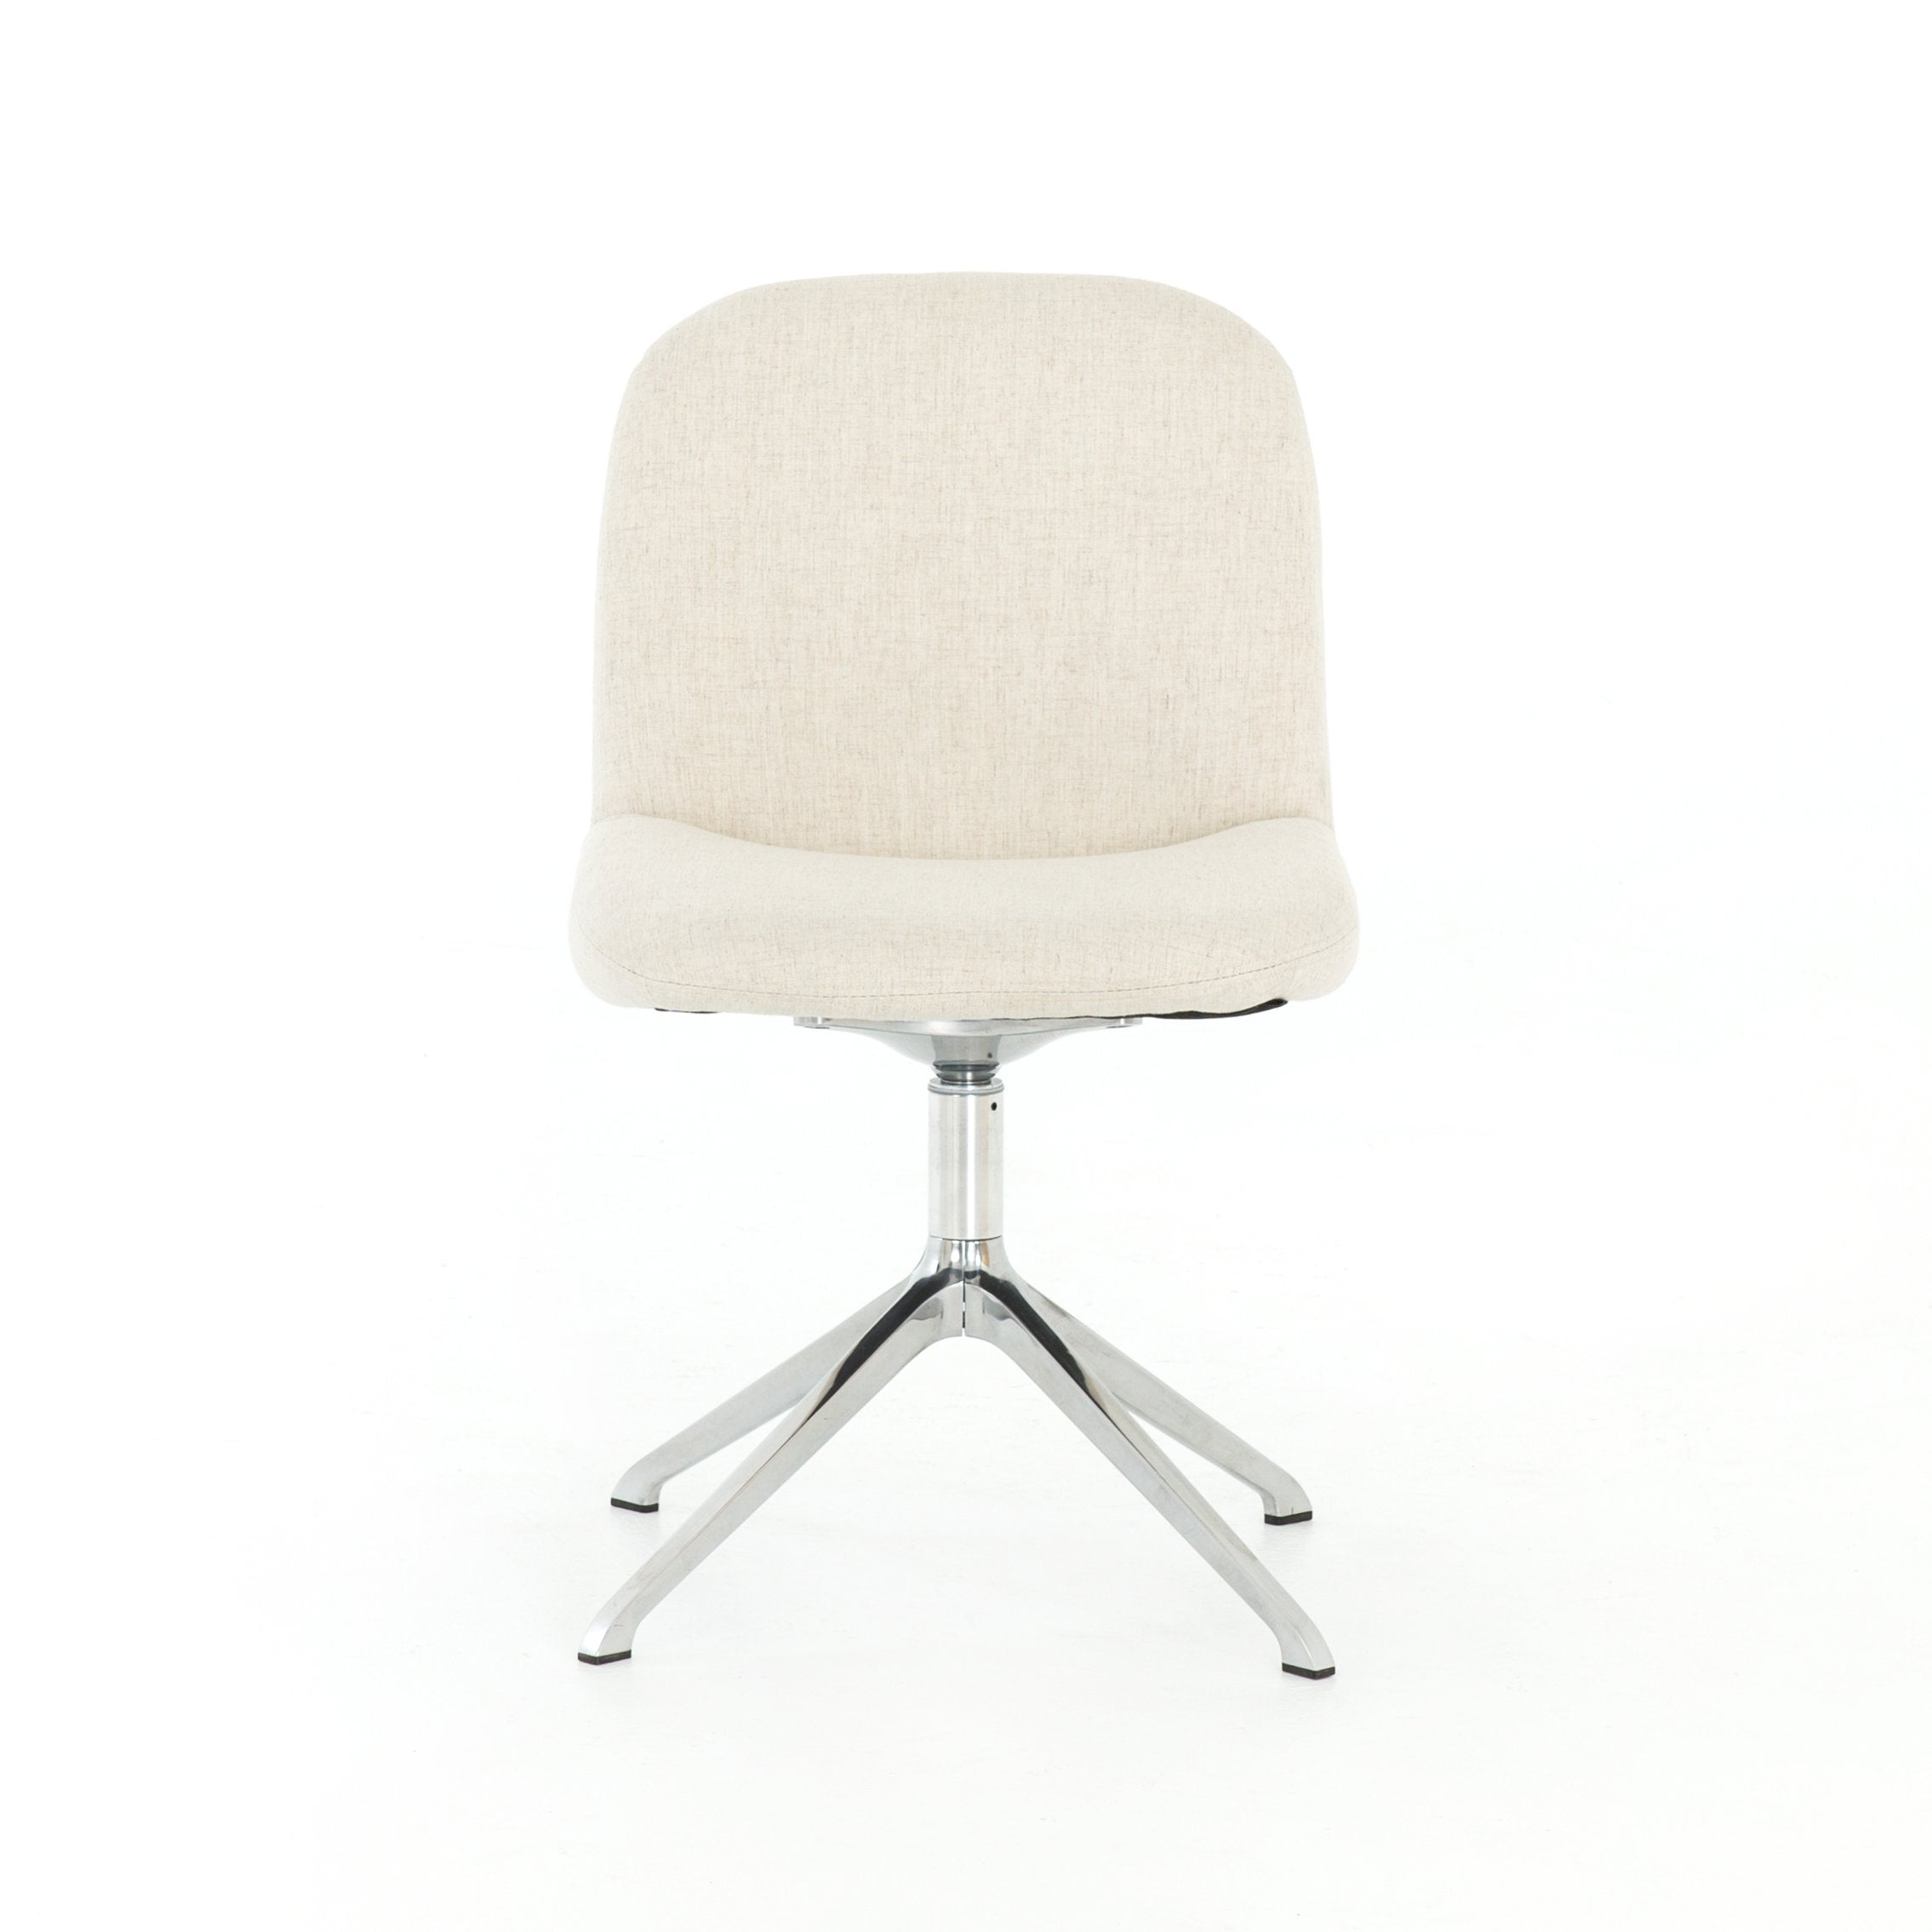 Amber Desk Chair in Various Colors by BD Studio